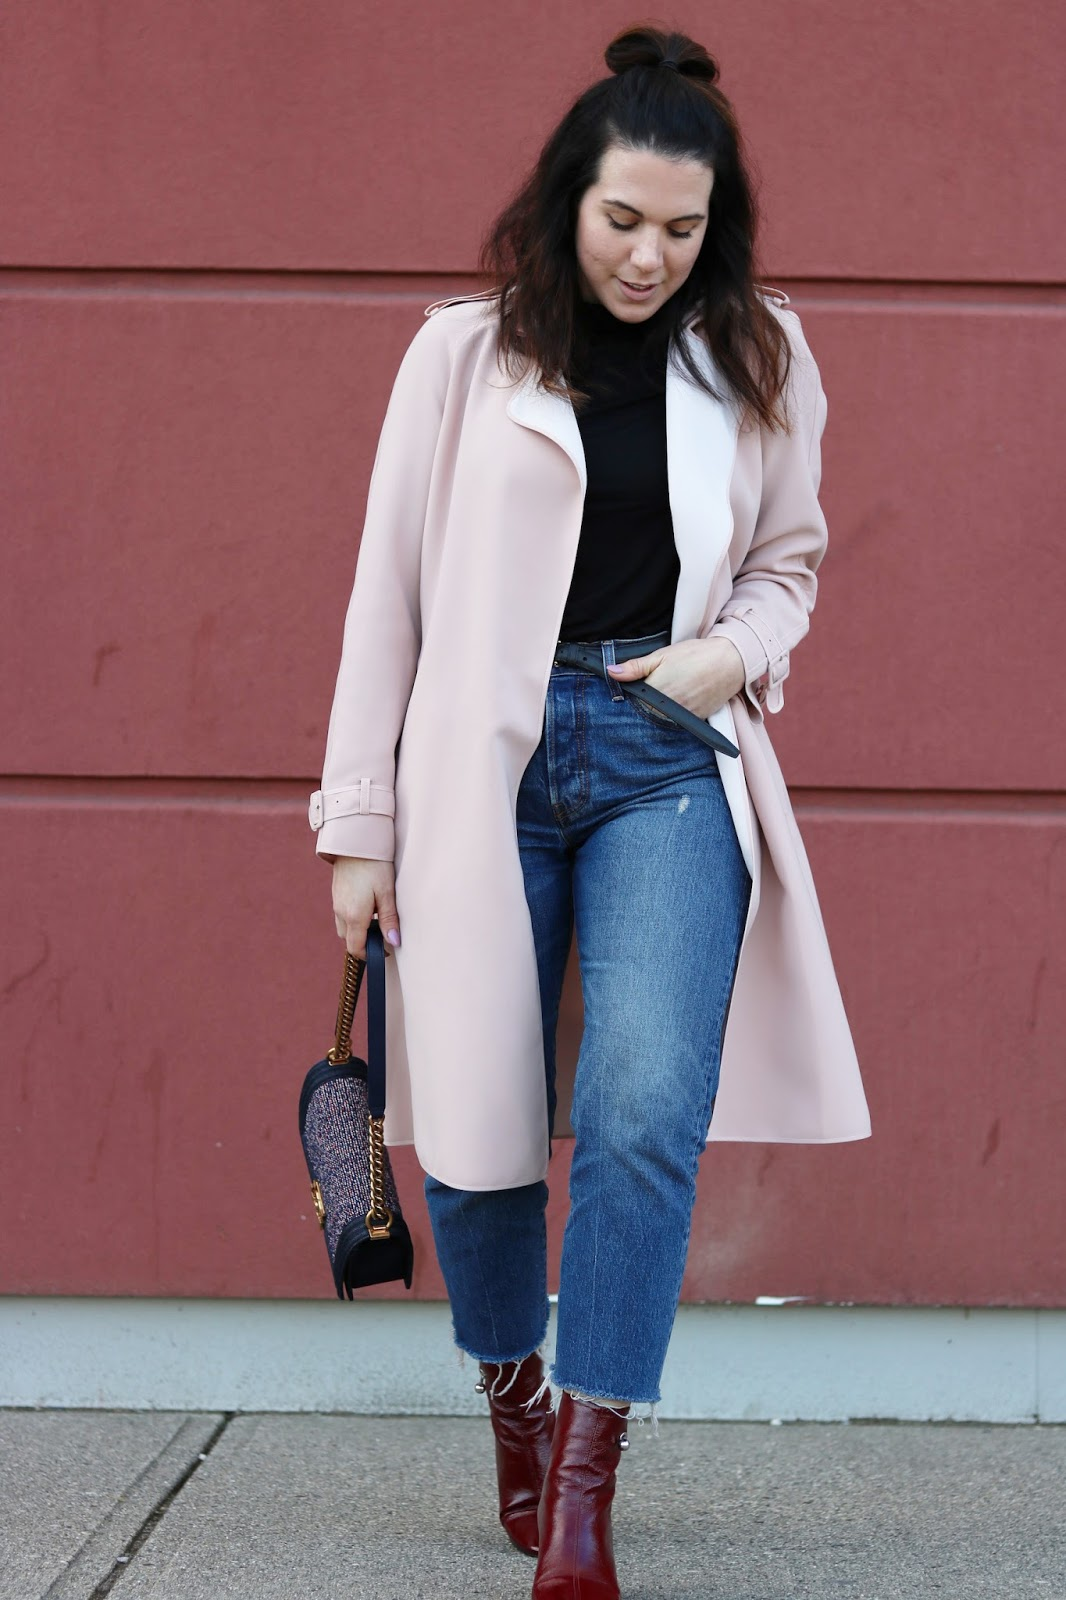 Le Chateau blush trench coat outfit levis wedgie jeans chanel denim boy bag vancouver fashion blogger aleesha harris